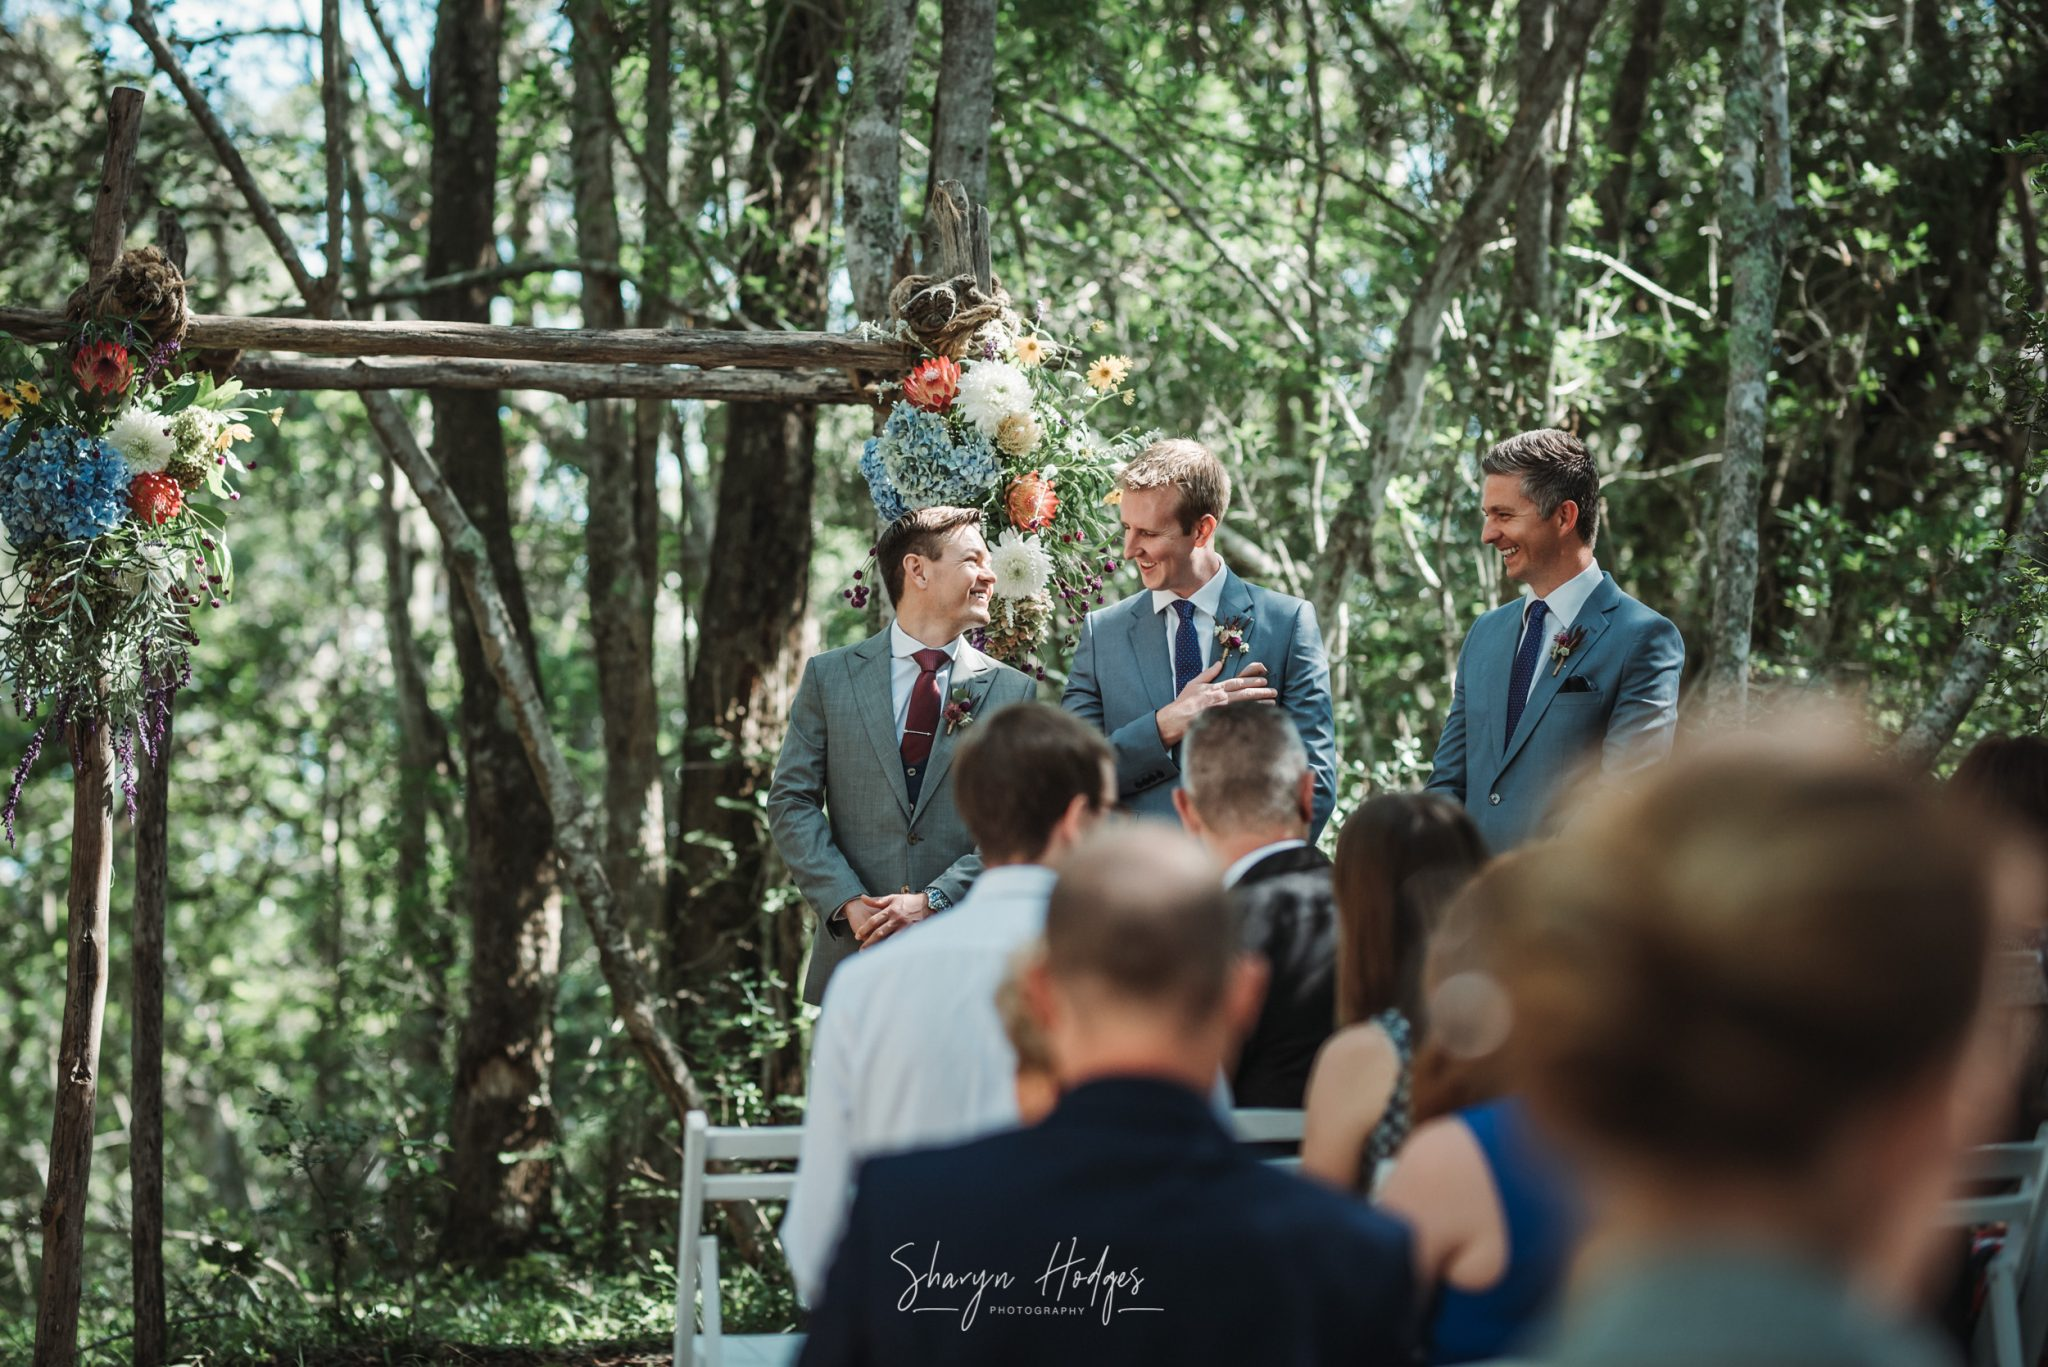 Annarie & Hendrik's garden route wedding took place at the magnificent luxury Forest Hall Estate in The Crags.